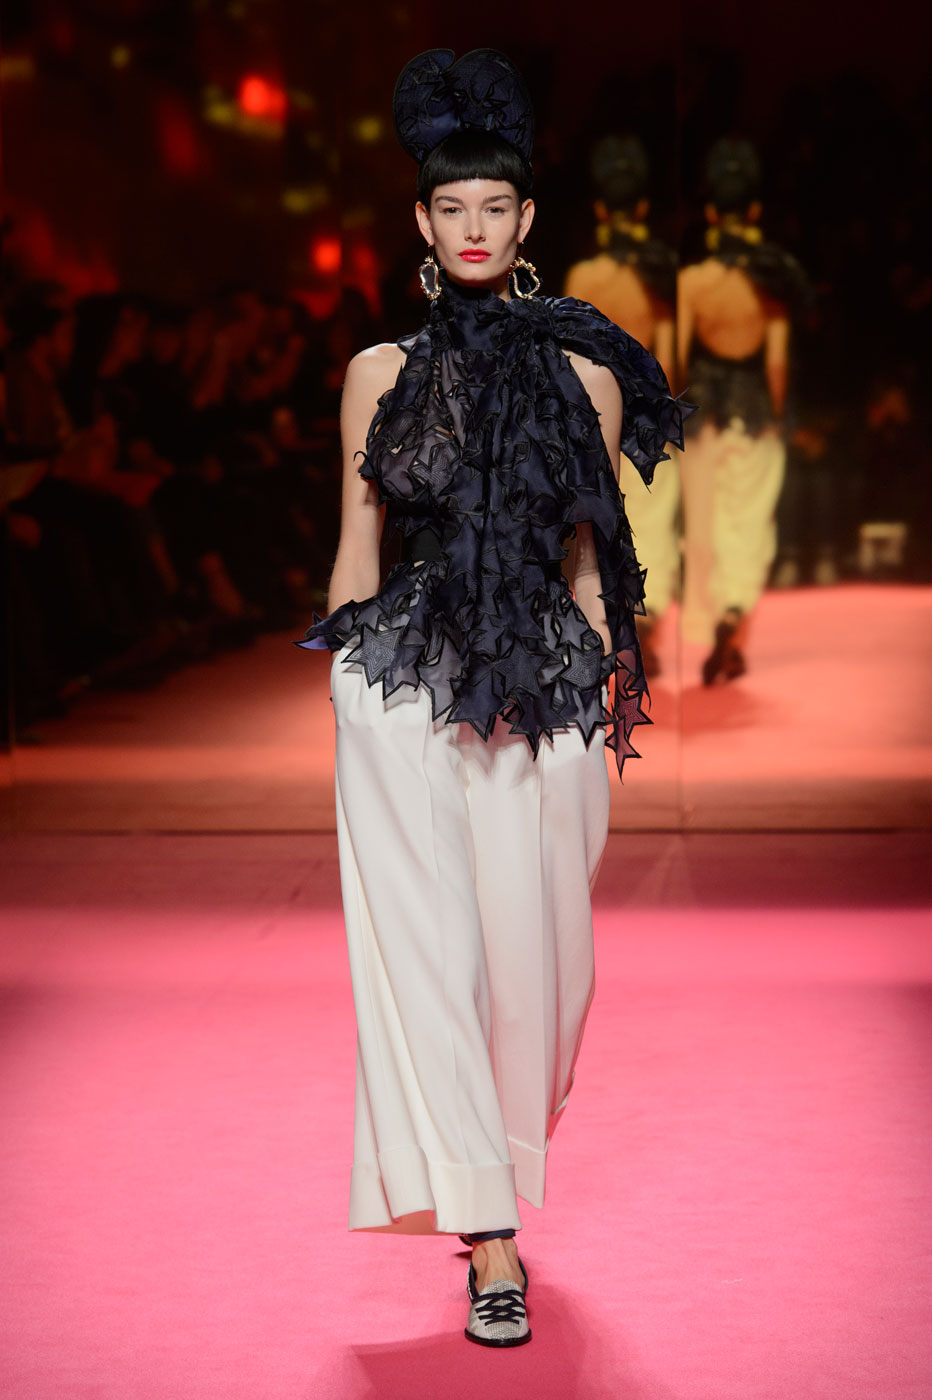 Schiaparelli-fashion-runway-show-haute-couture-paris-spring-summer-2015-the-impression-11